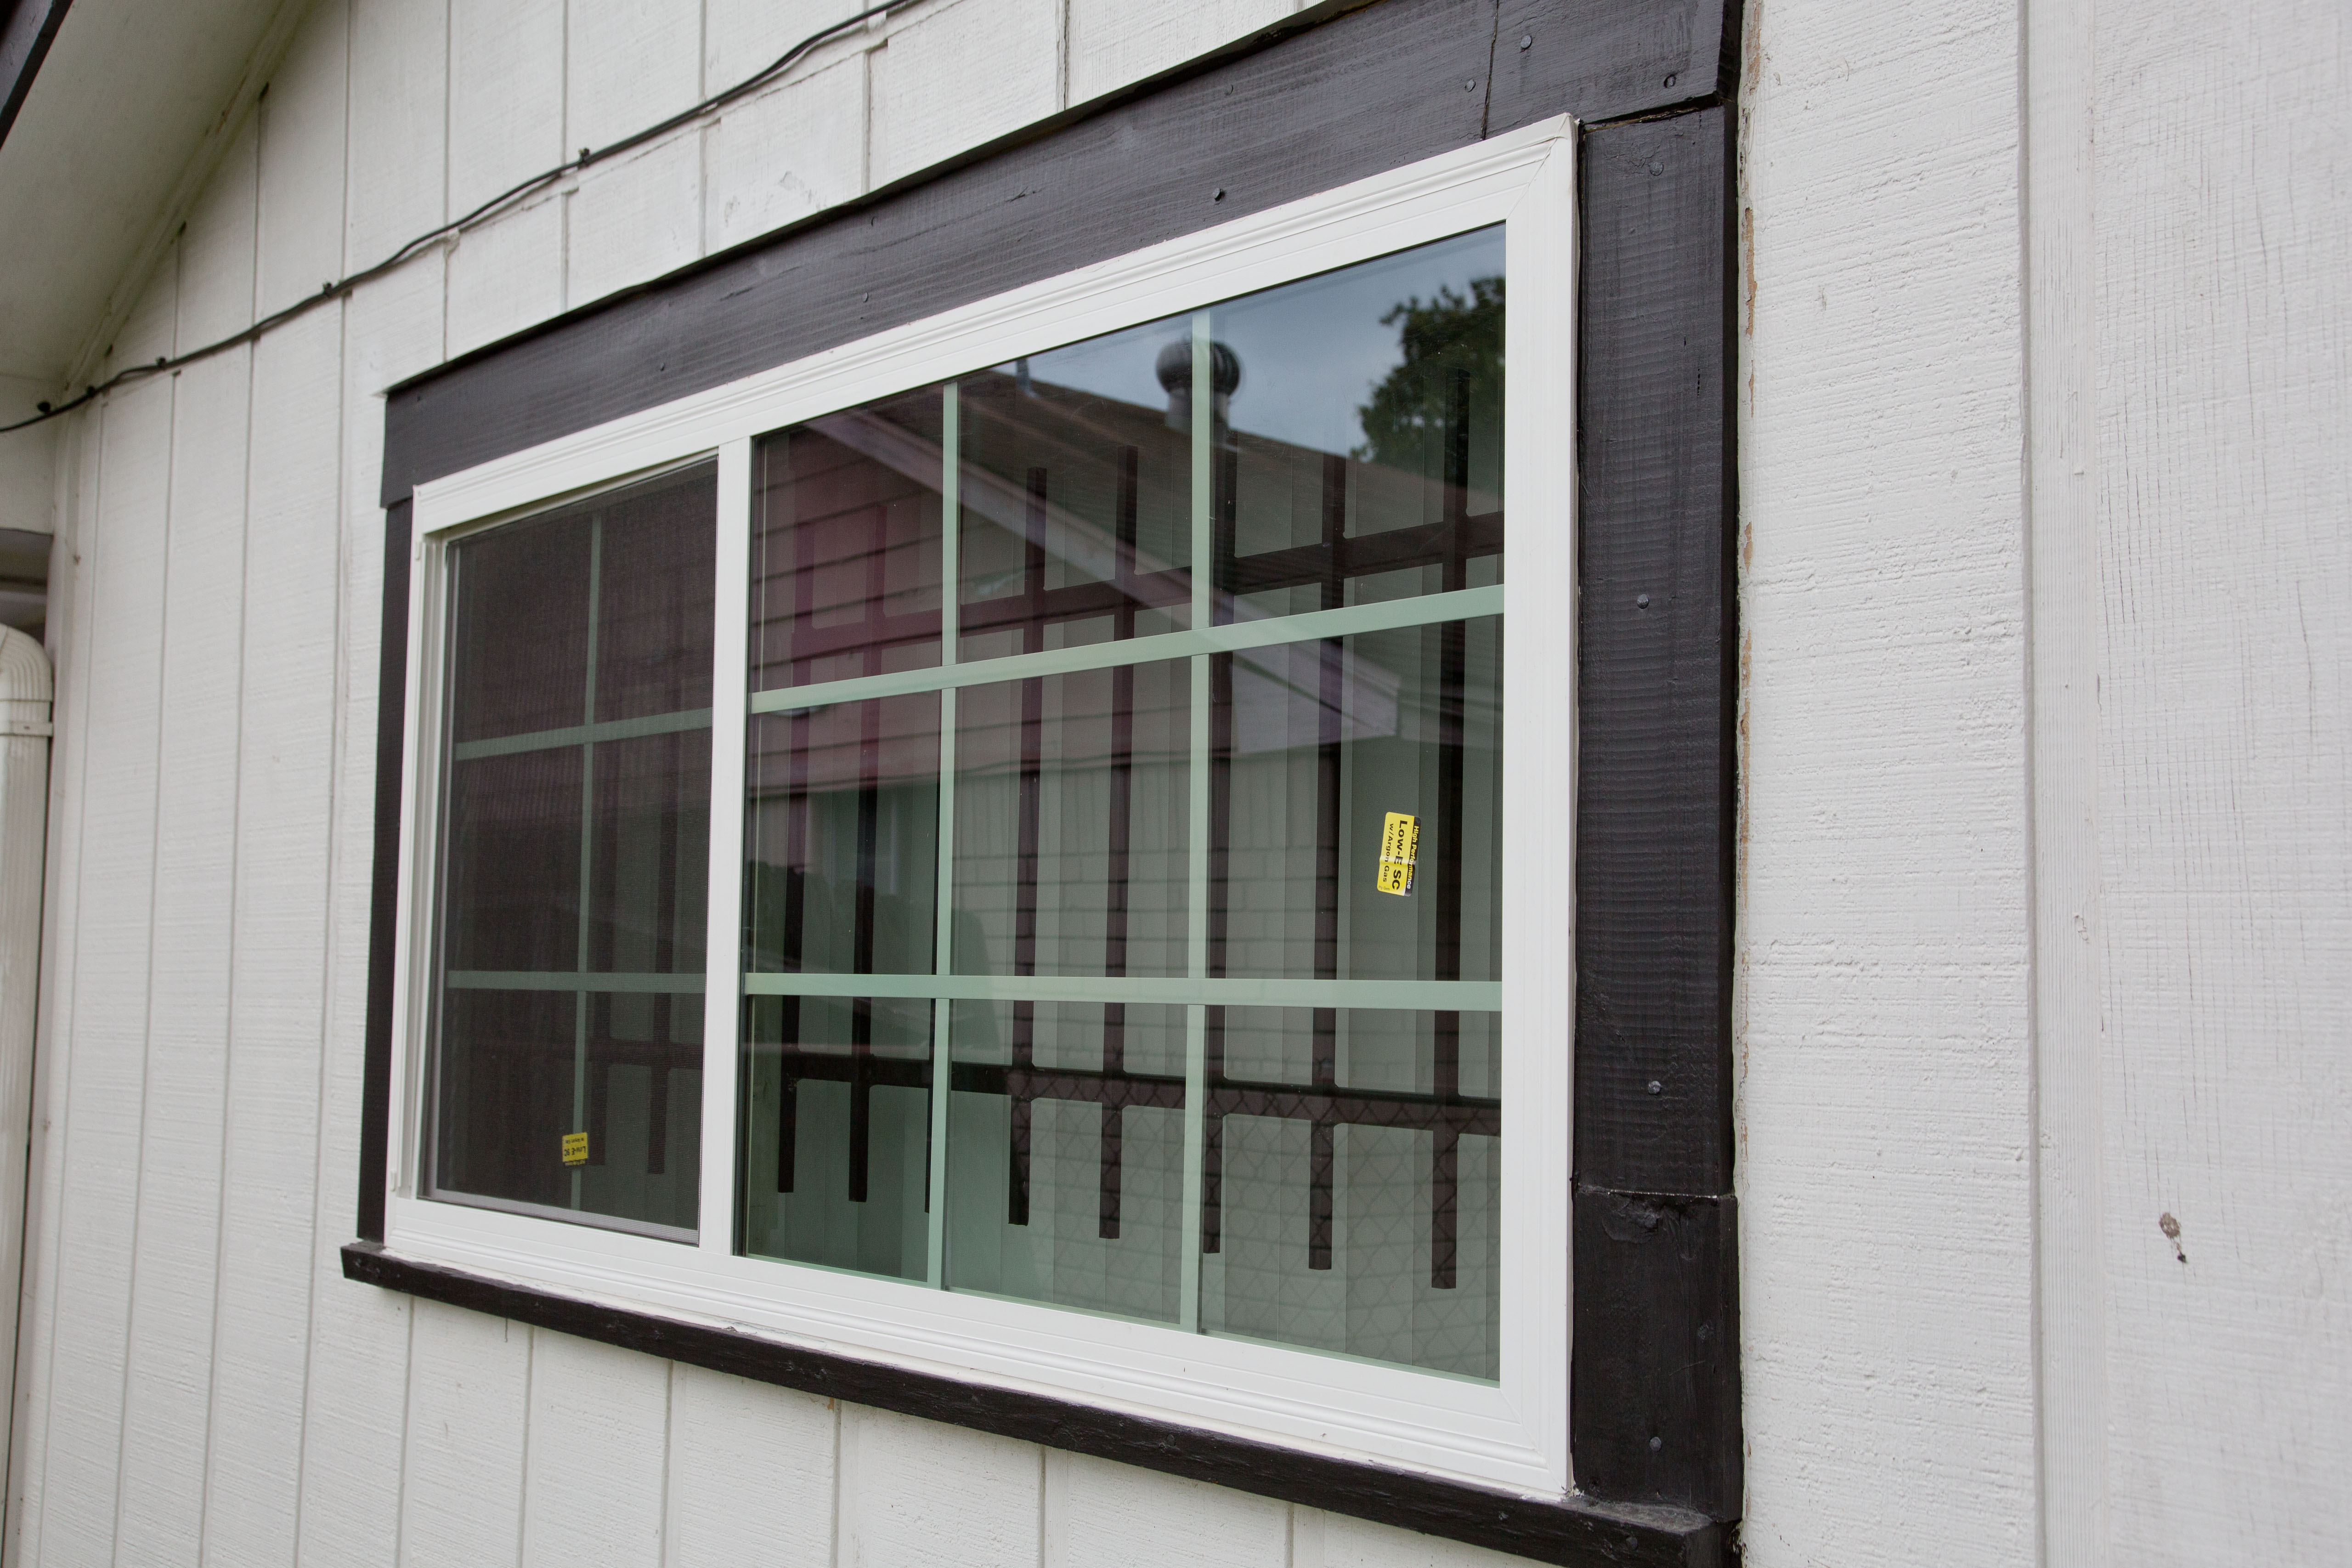 SNAP Grant Provides New Window and Electrical Panel